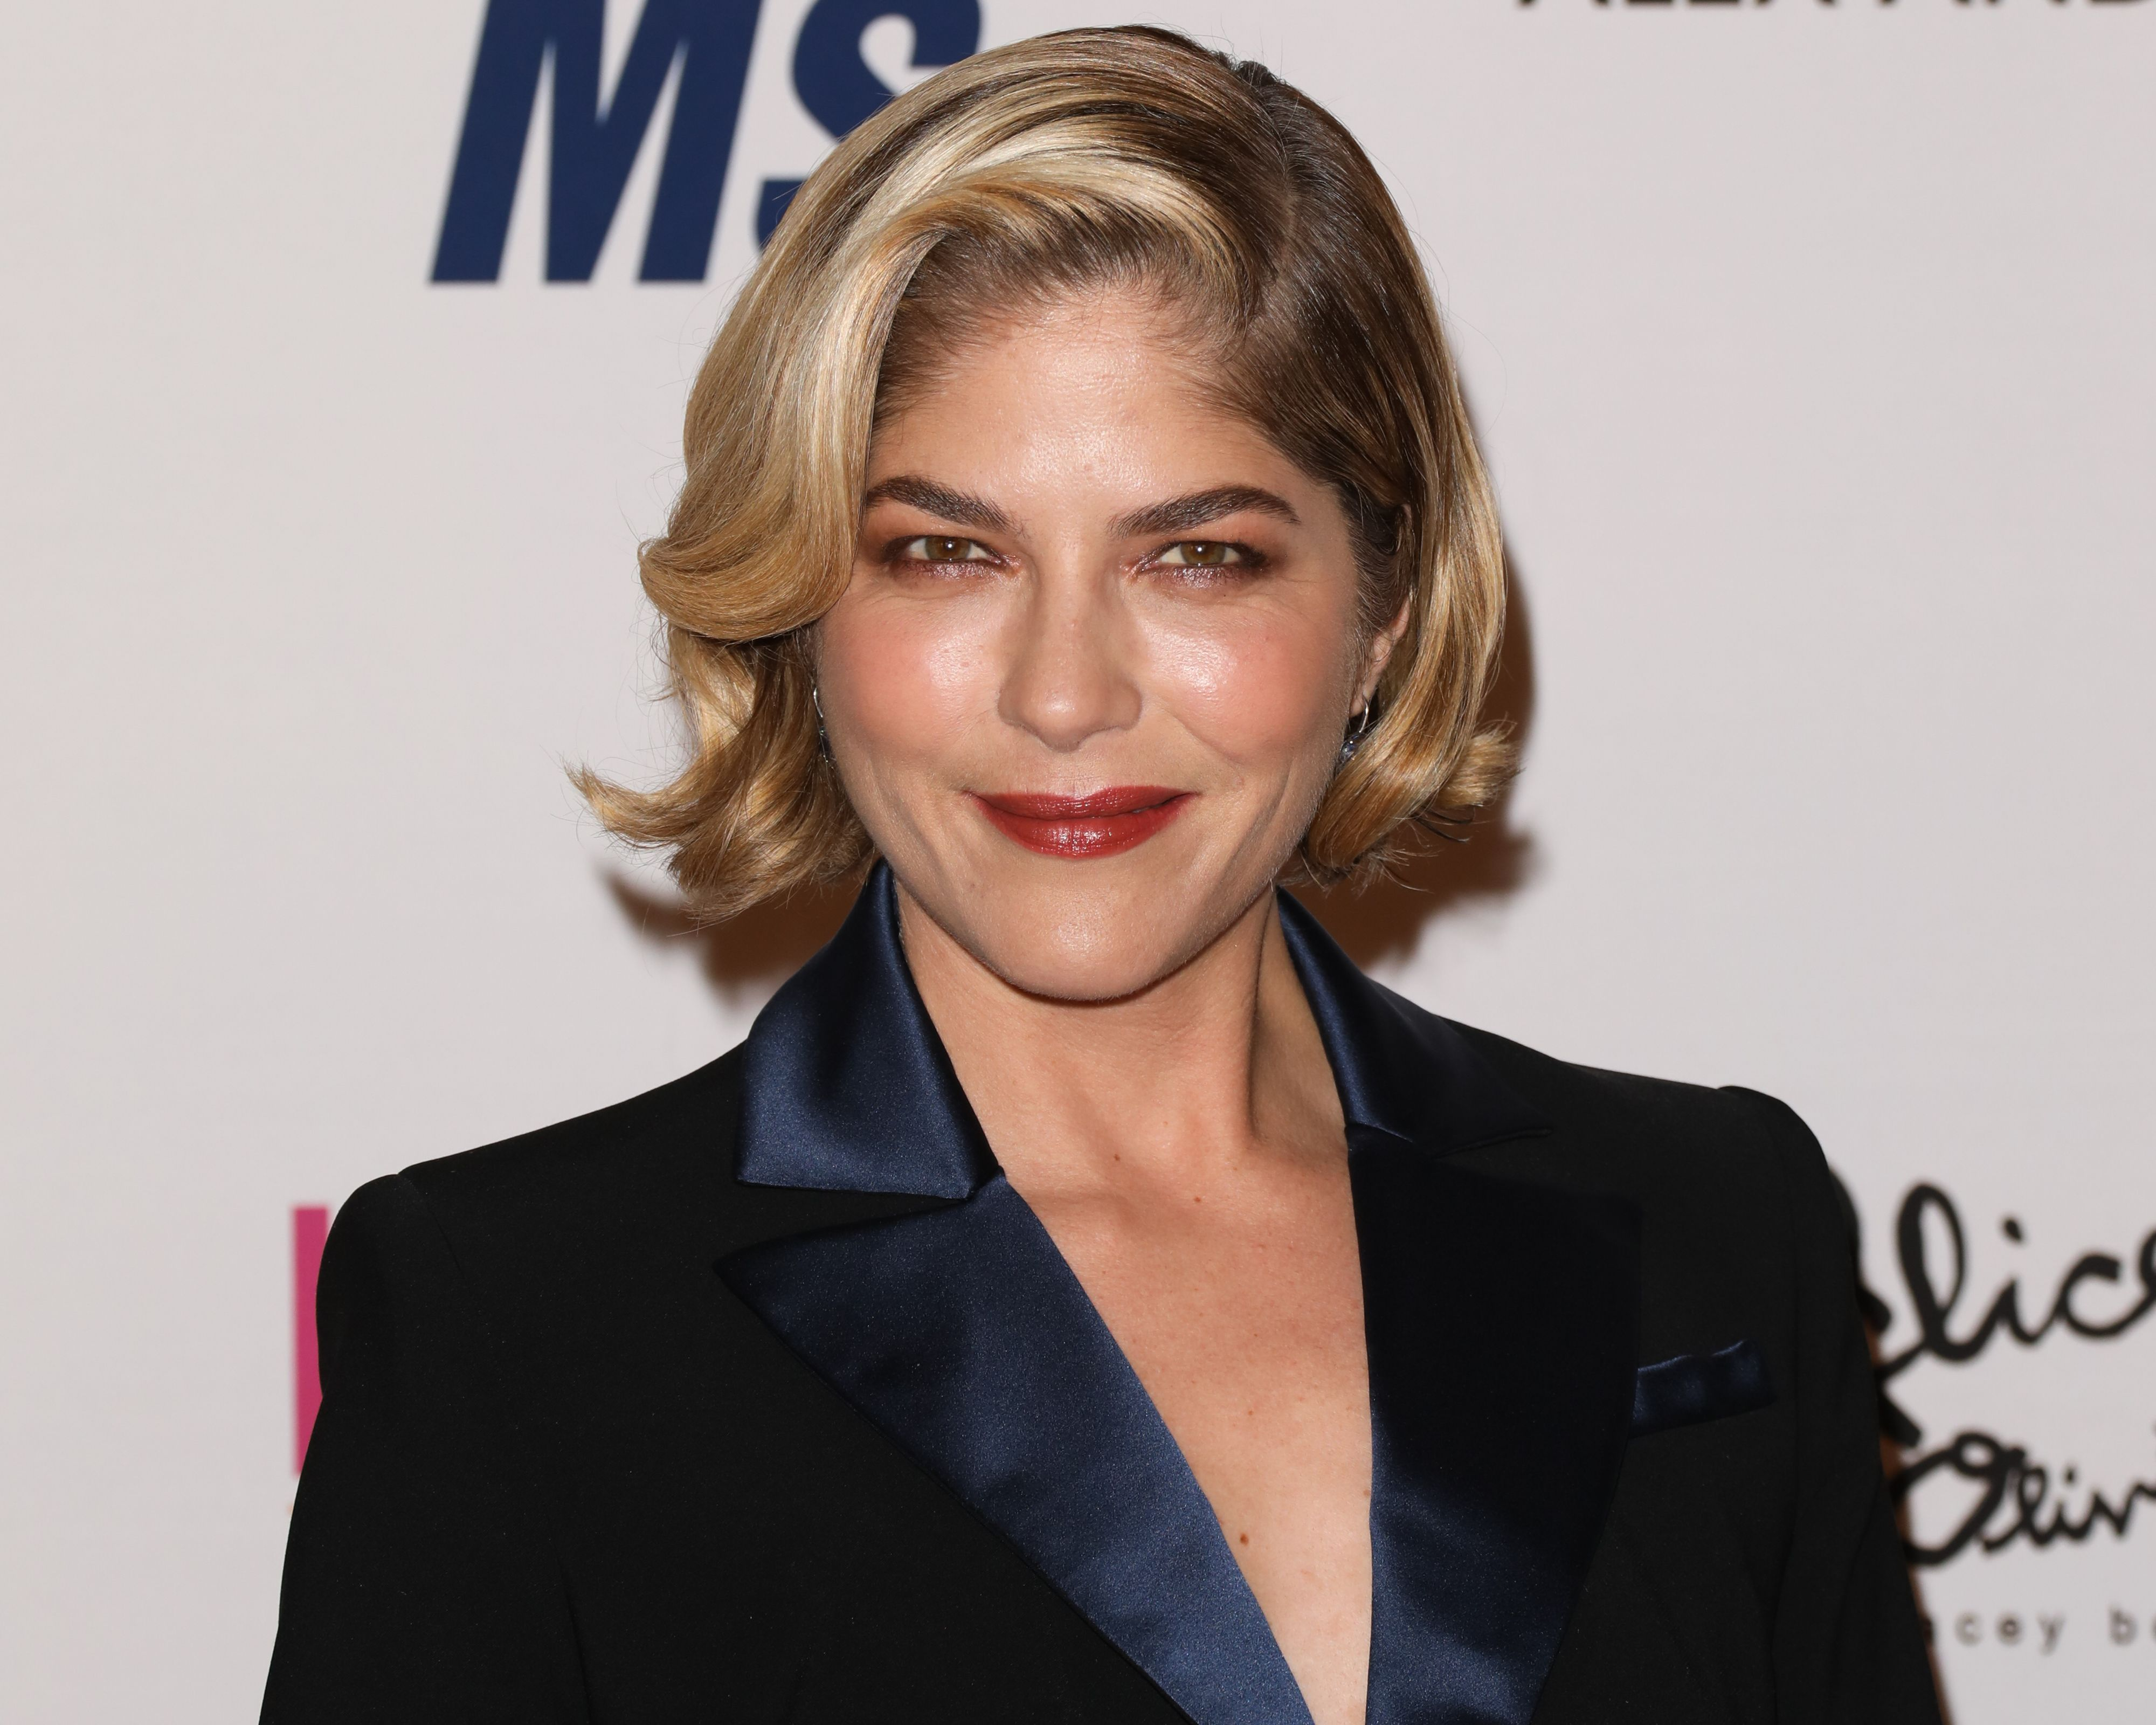 Selma Blair poses on the red carpet for an MS awareness event